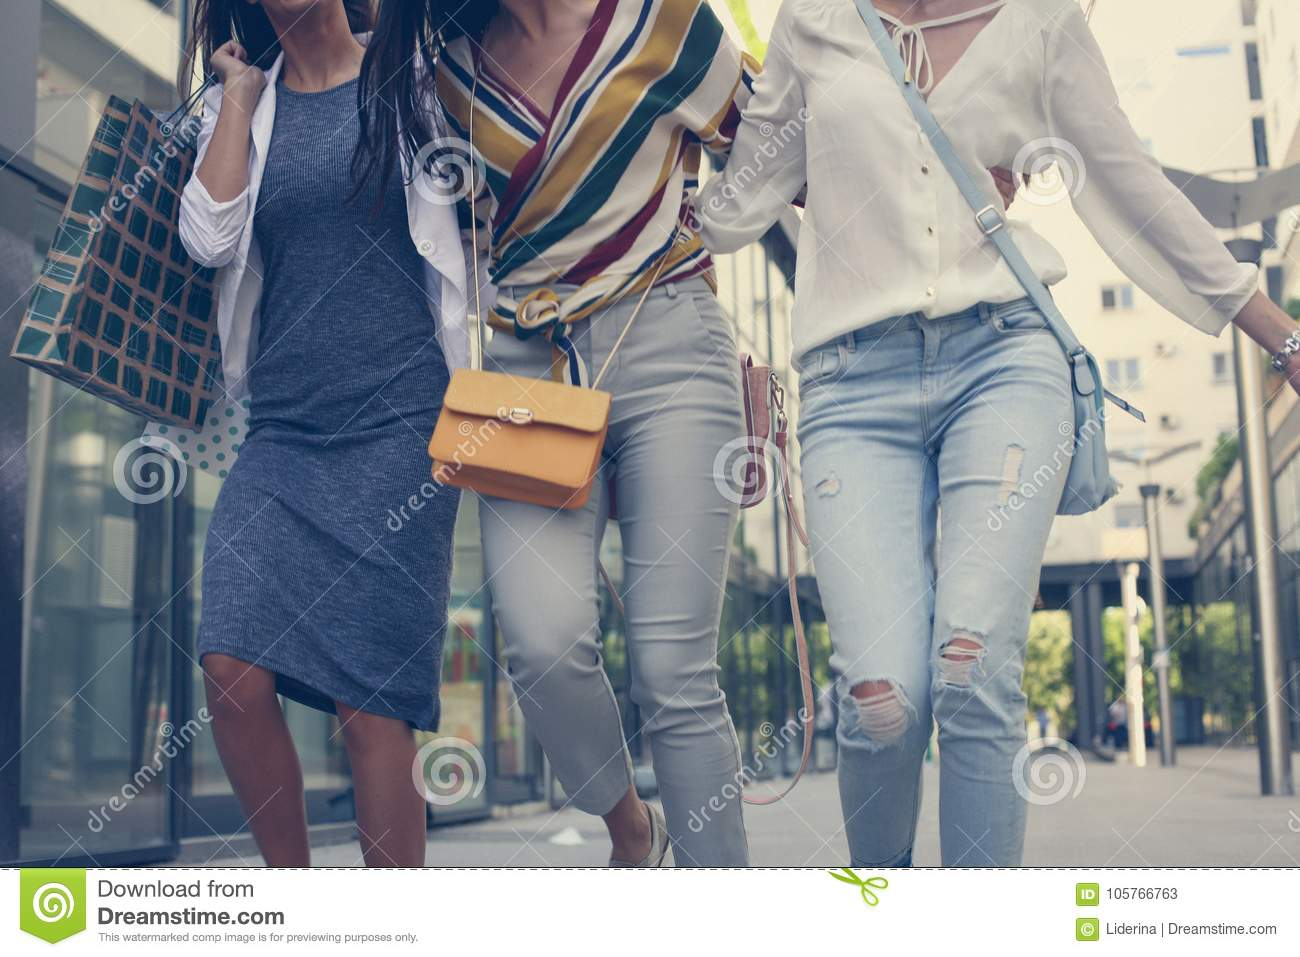 Three young girls walking happy with shopping bags.